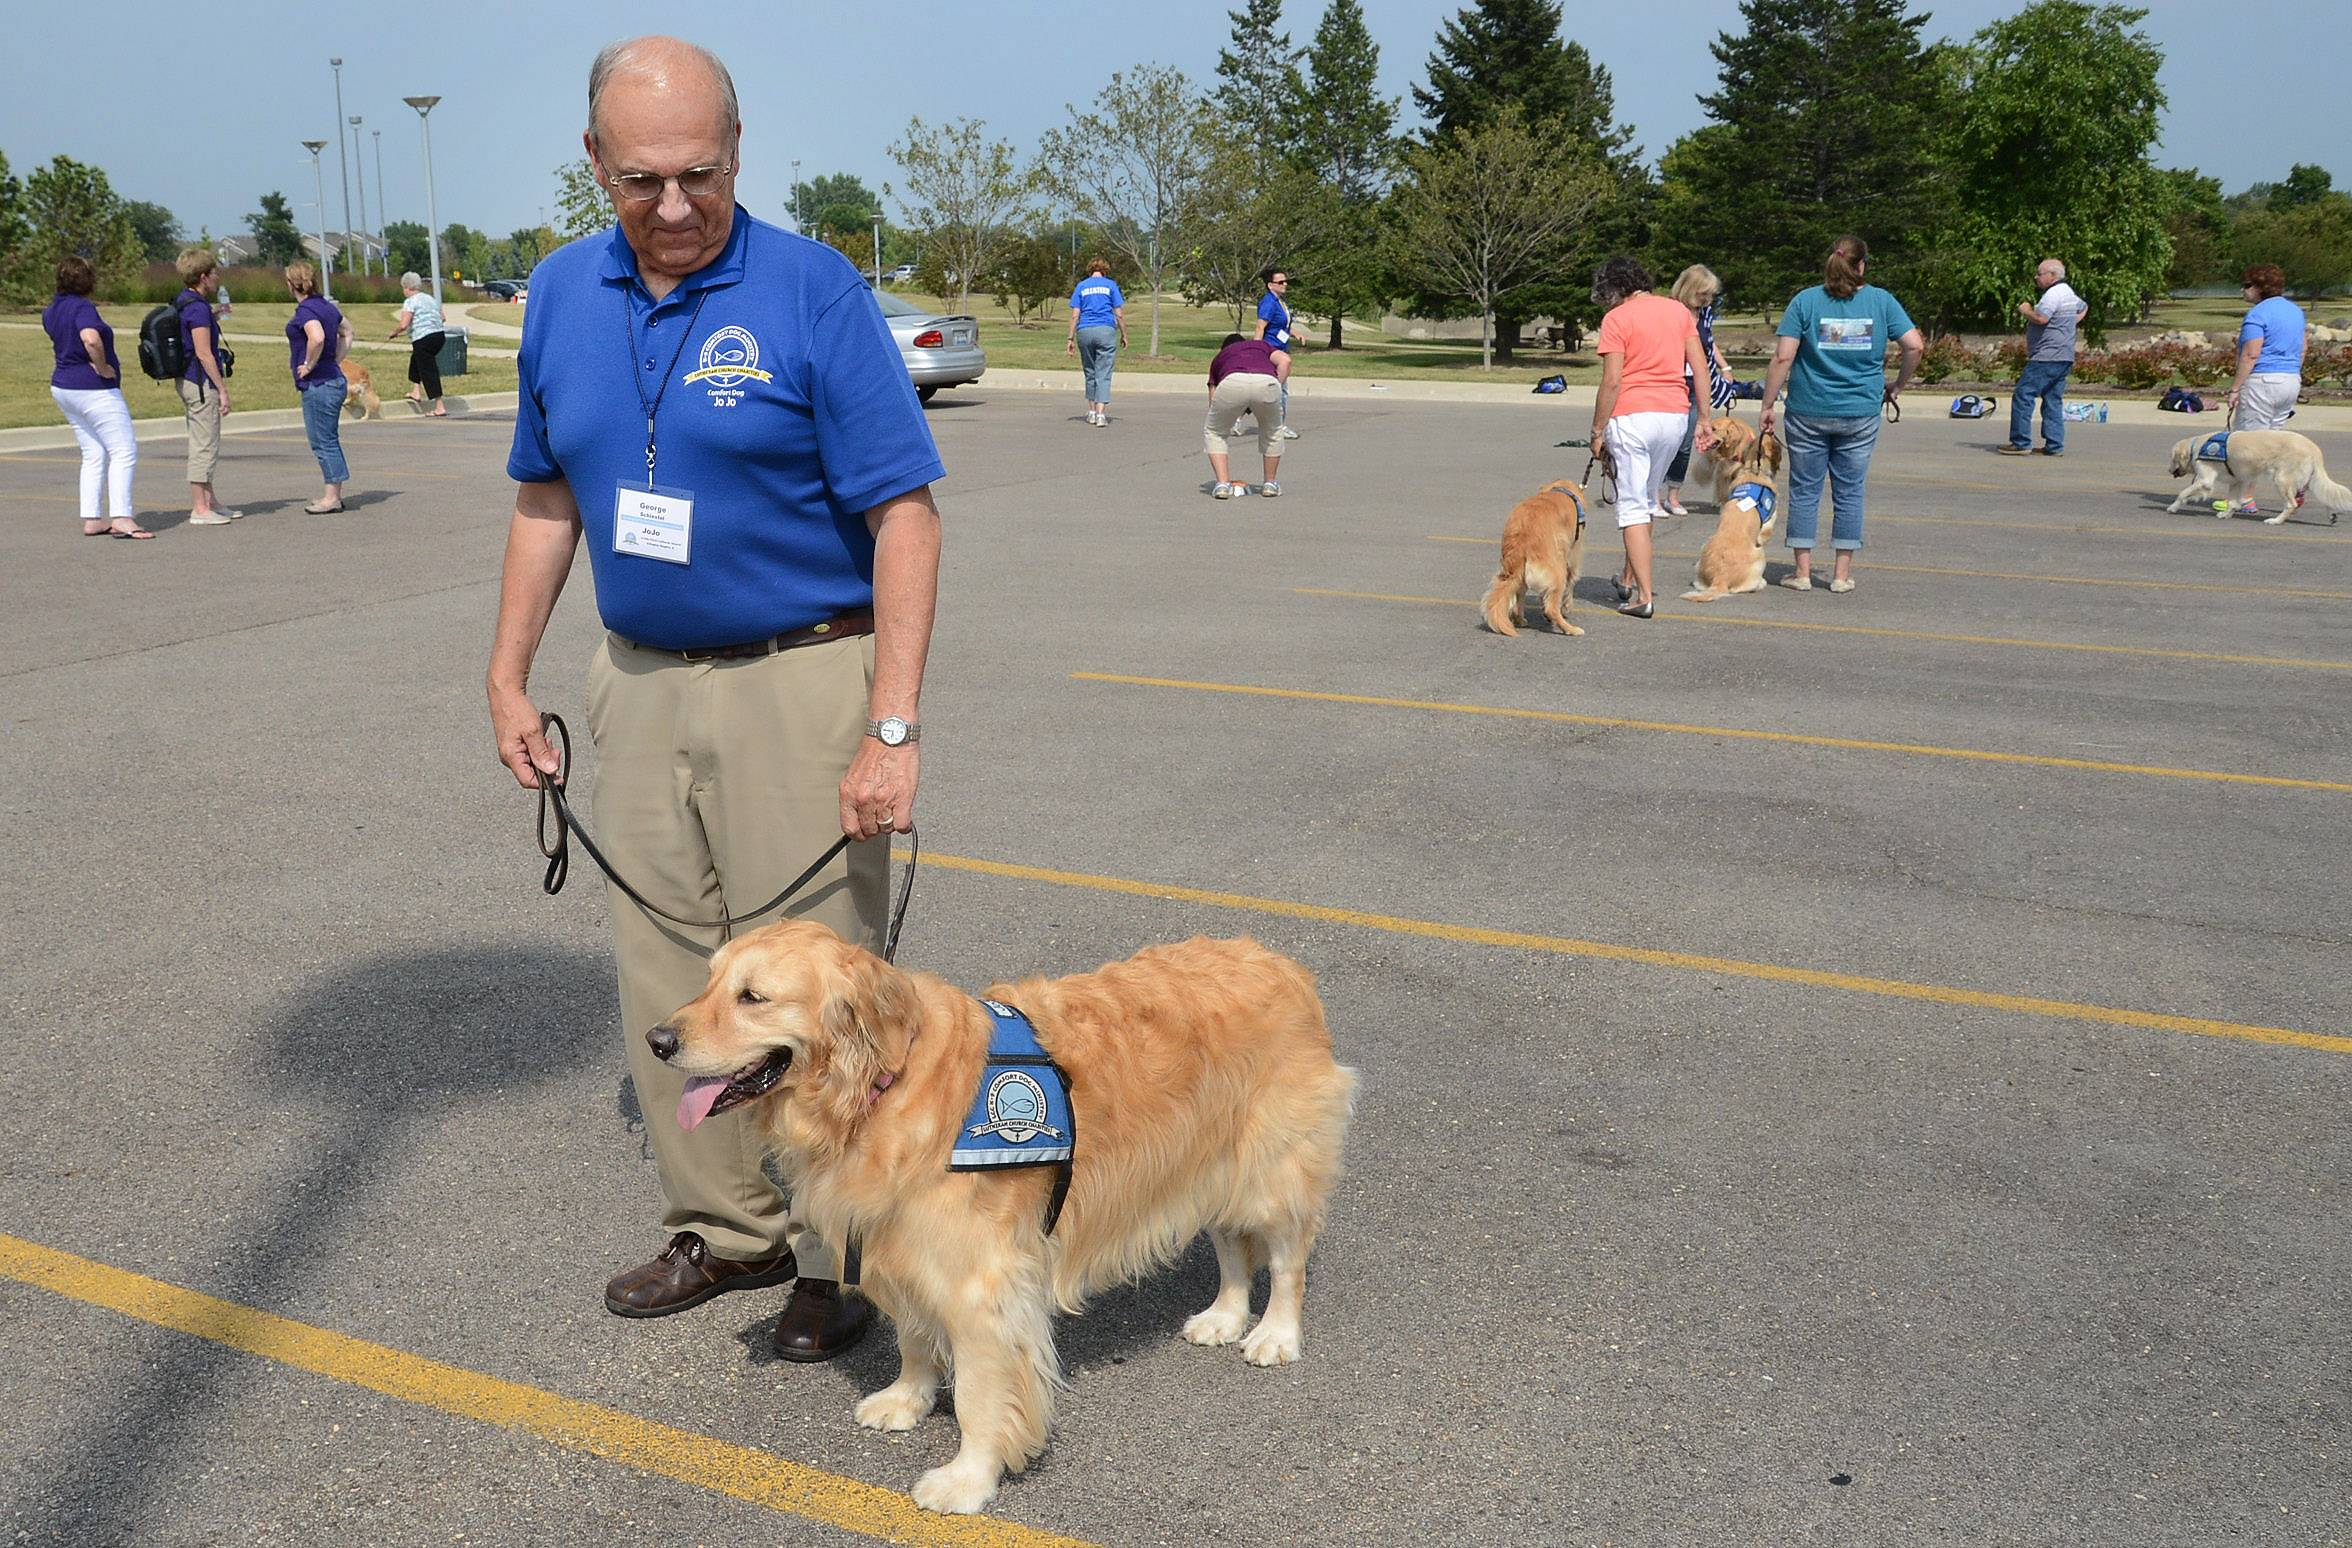 George Schiestel of Arlington Heights works with his dog JoJo during a dog obedience session as part of Lutheran Church Charities Comfort Dog Ministry national convention Friday at Harper College.